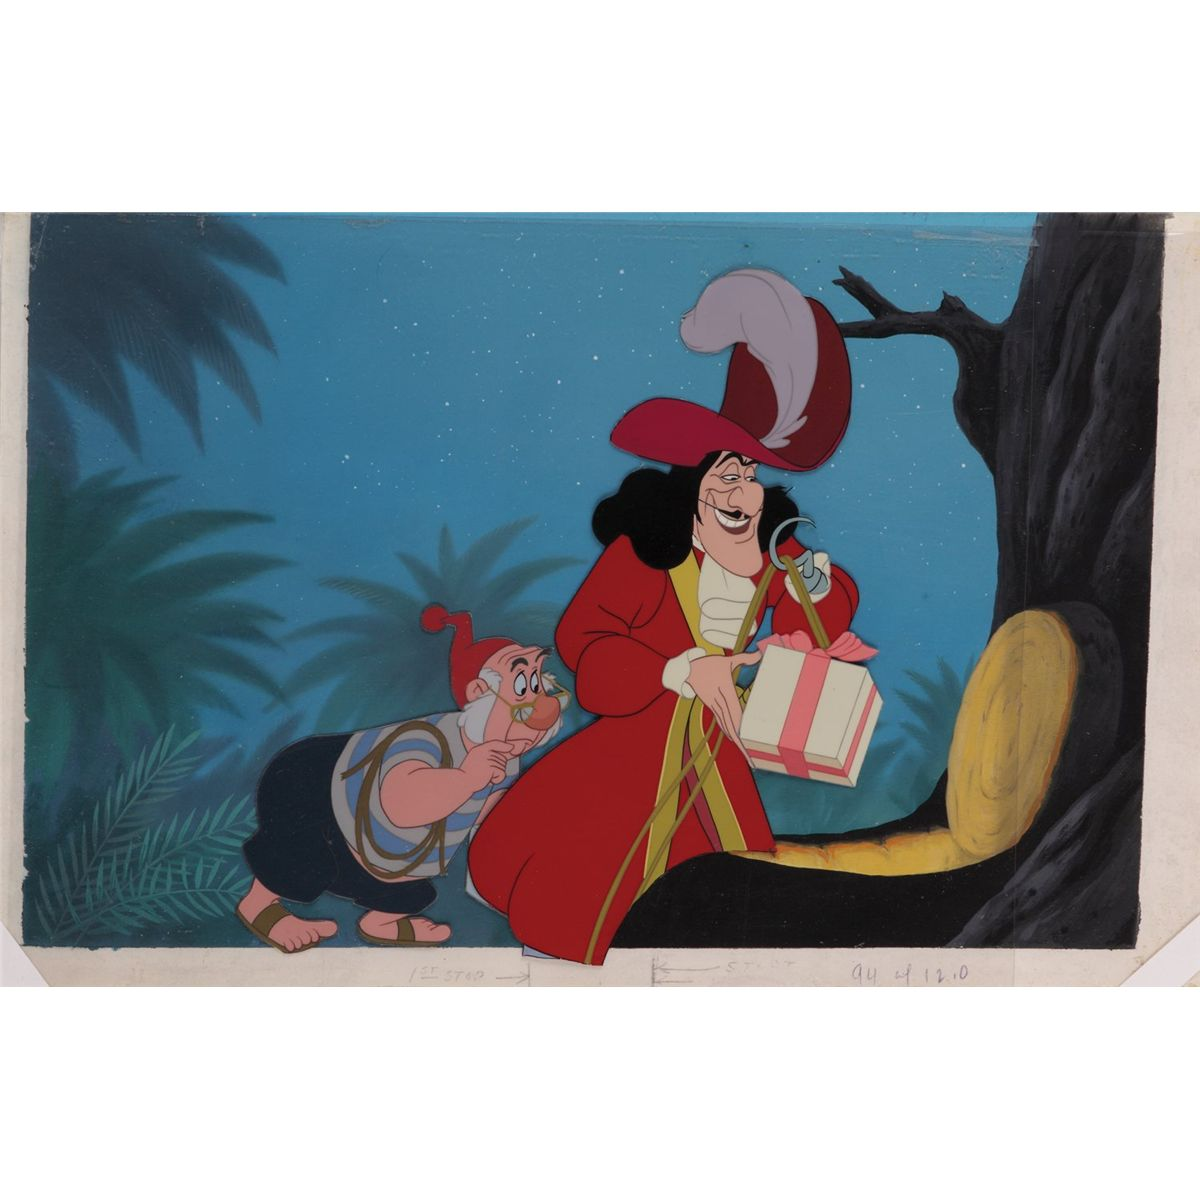 Uncategorized Hook And Smee captain hook and smee at treehouse original production cels background from peter pan